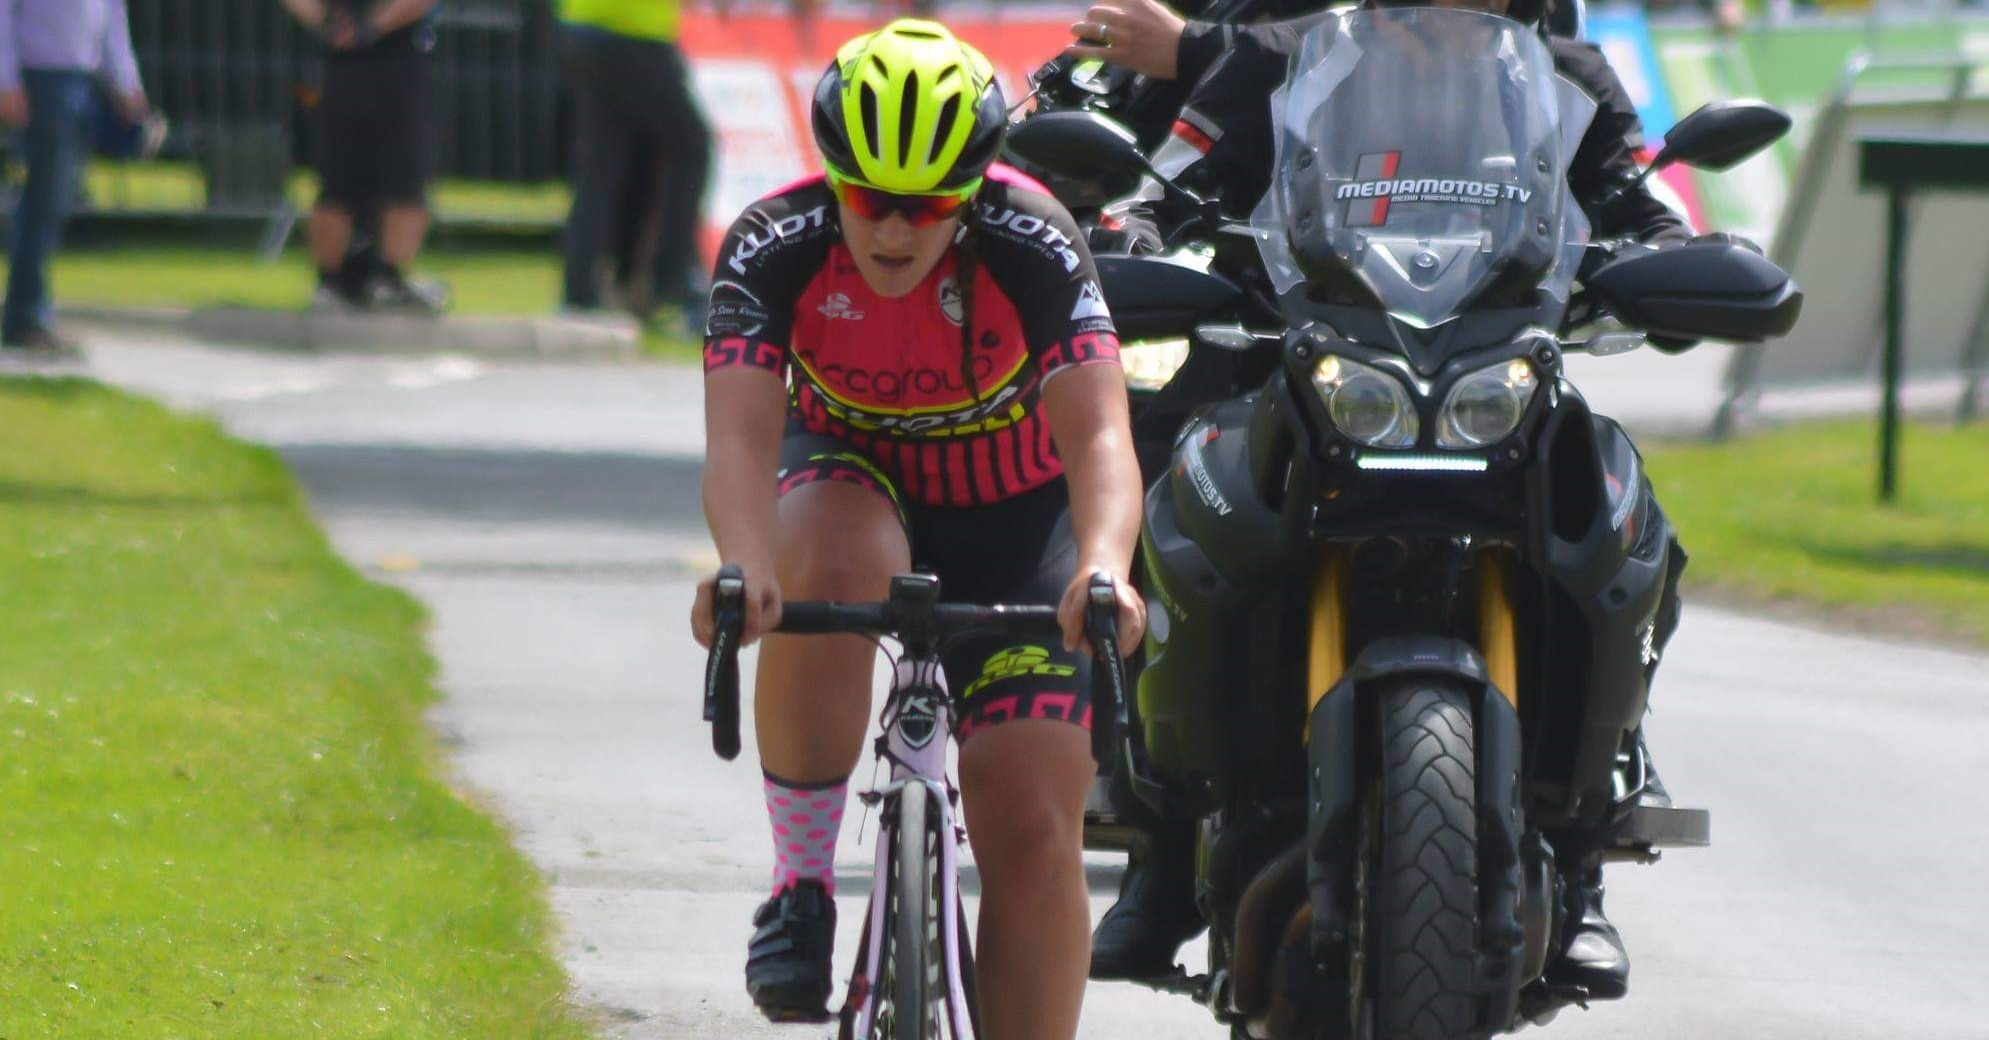 Steph Mottram riding in the UCI